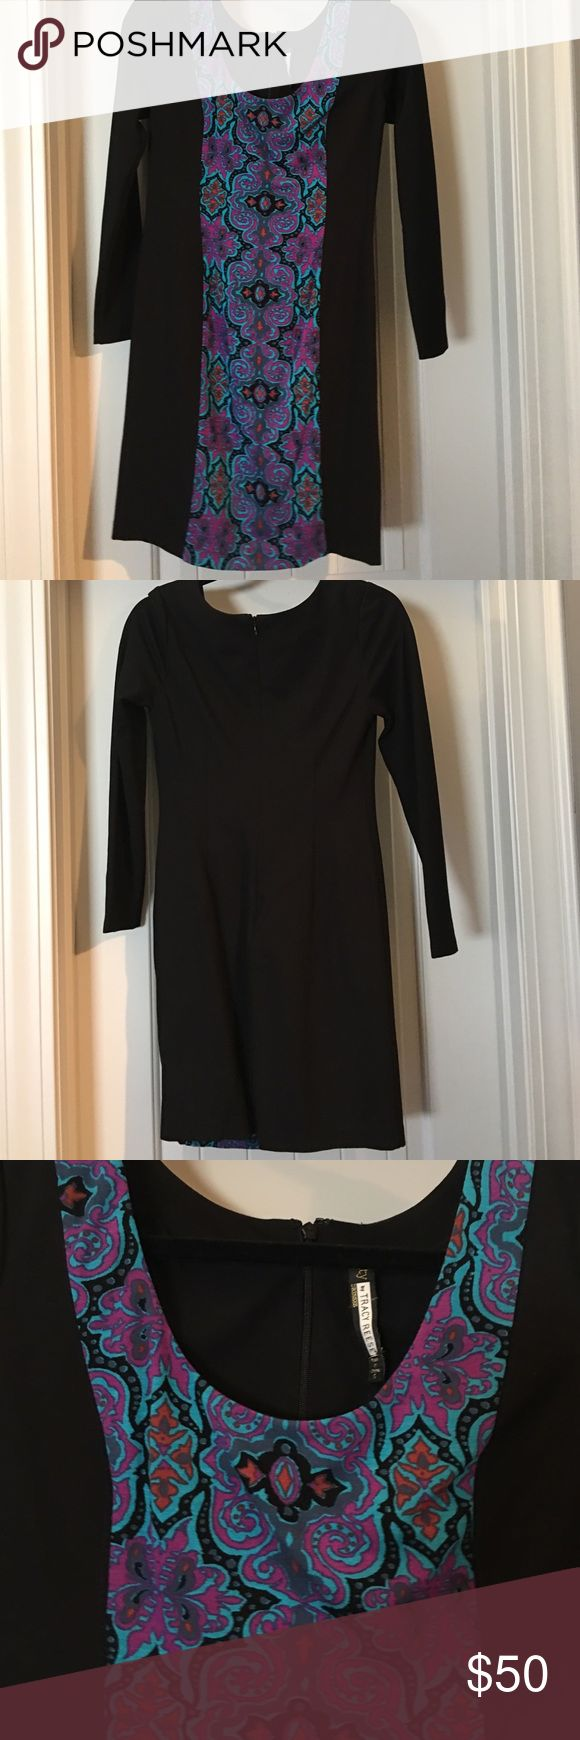 Long sleeve short dress Beautiful long sleeve Tracy Reese dress. Only worn once, in excellent condition. Tracy Reese Dresses Long Sleeve